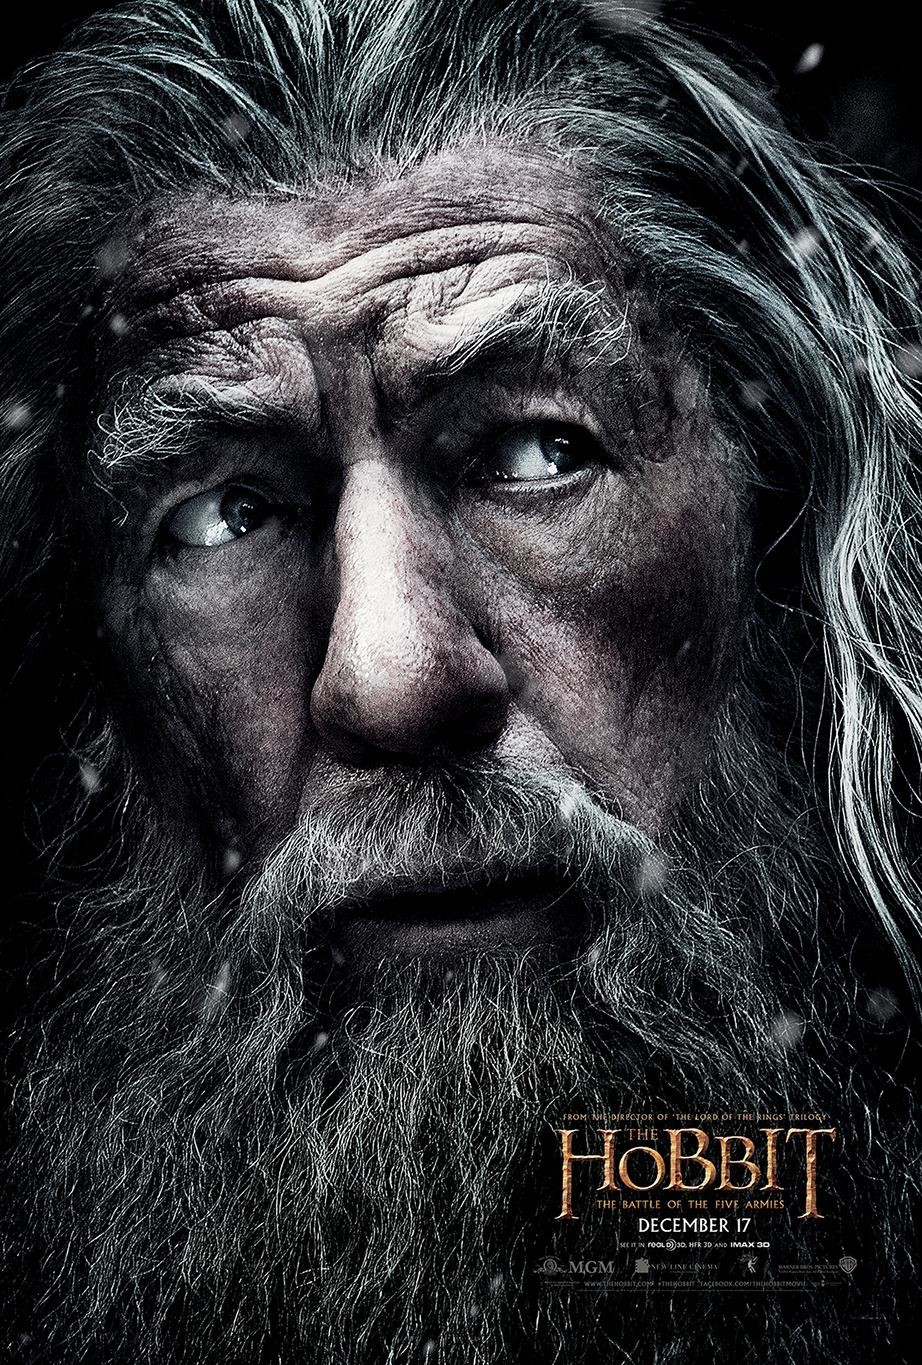 The Hobbit The Battle of the Five Armies-Official Poster XLG-09OUTUBRO2014-02